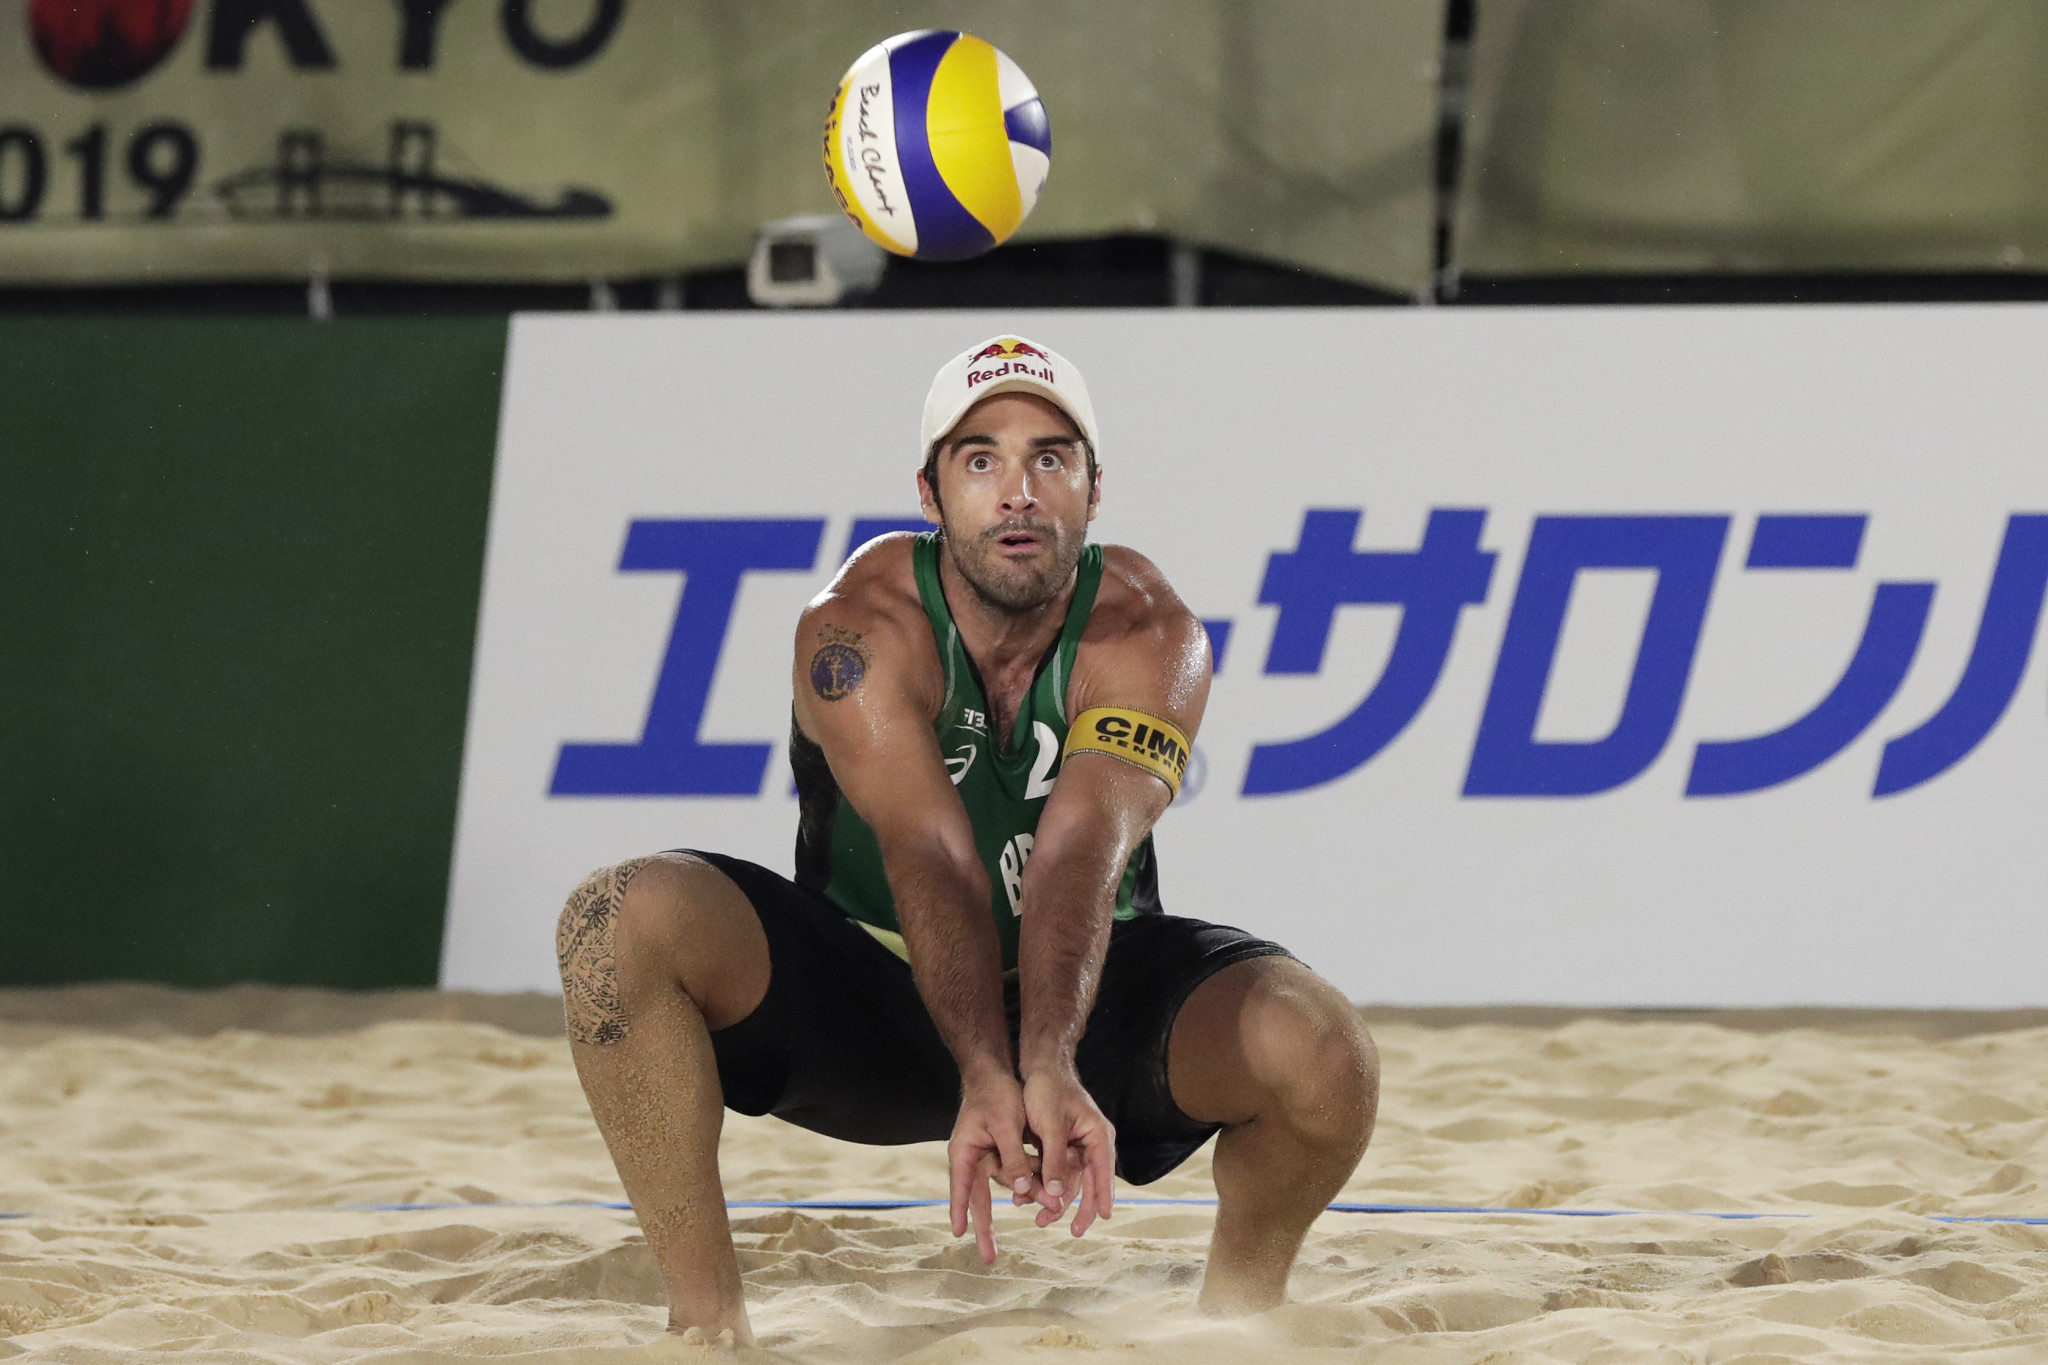 Olympic beach volleyball champion Schmidt leaves hospital after COVID-19 battle